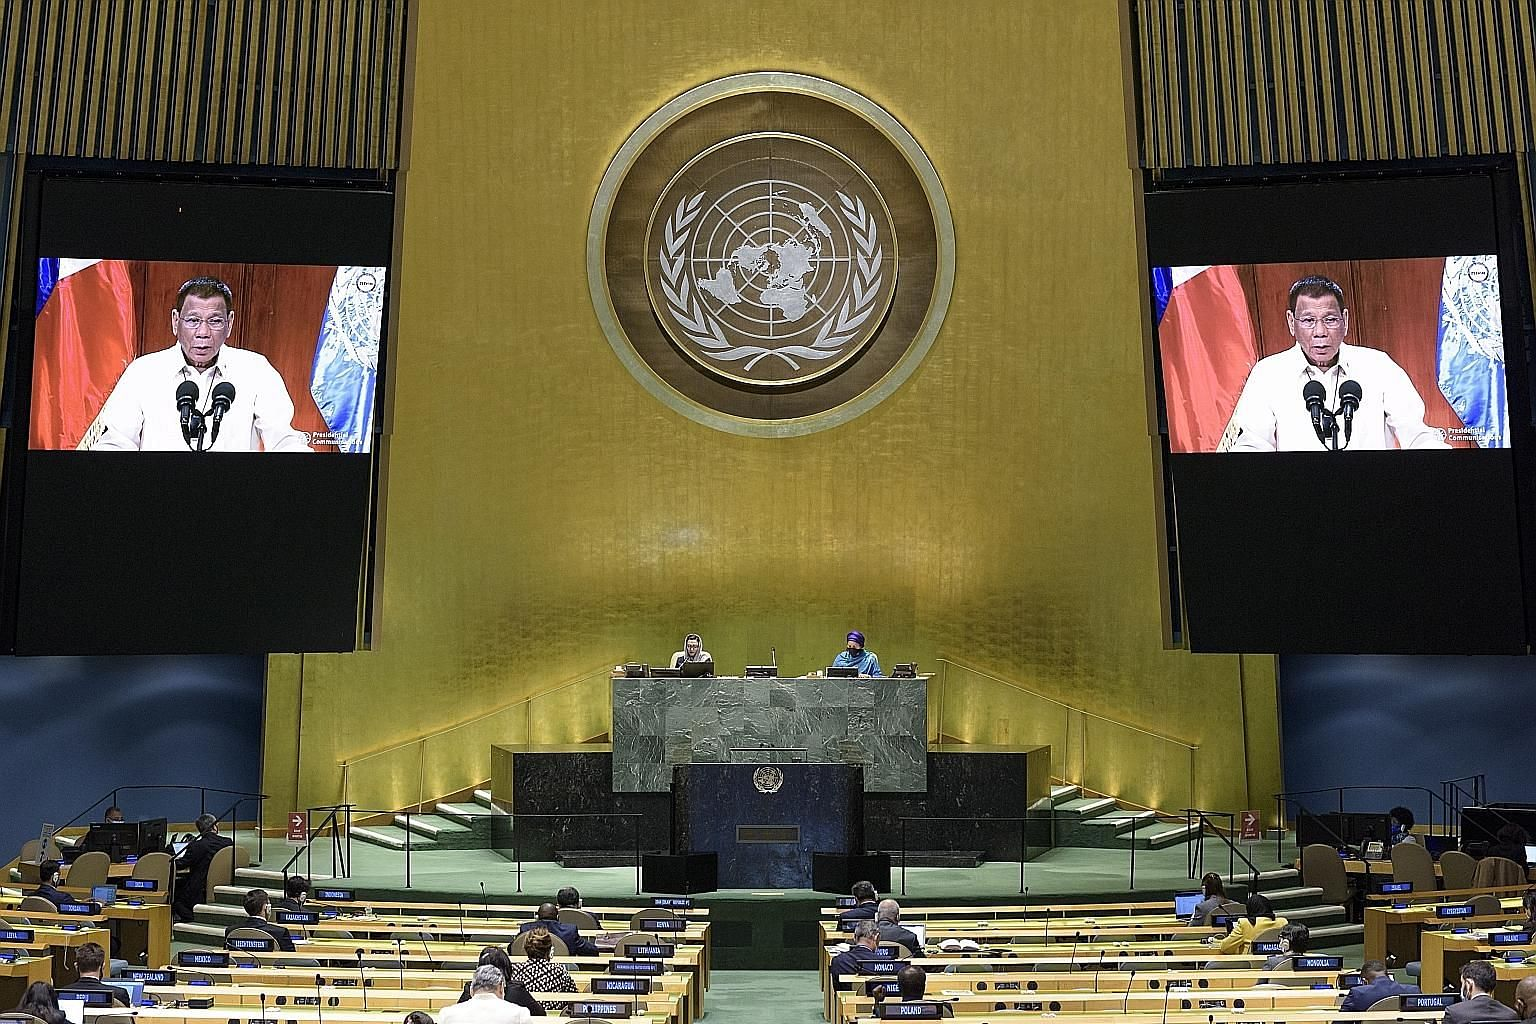 Philippine President Rodrigo Duterte making his virtual address to the 75th General Assembly of the United Nations in New York on Tuesday.